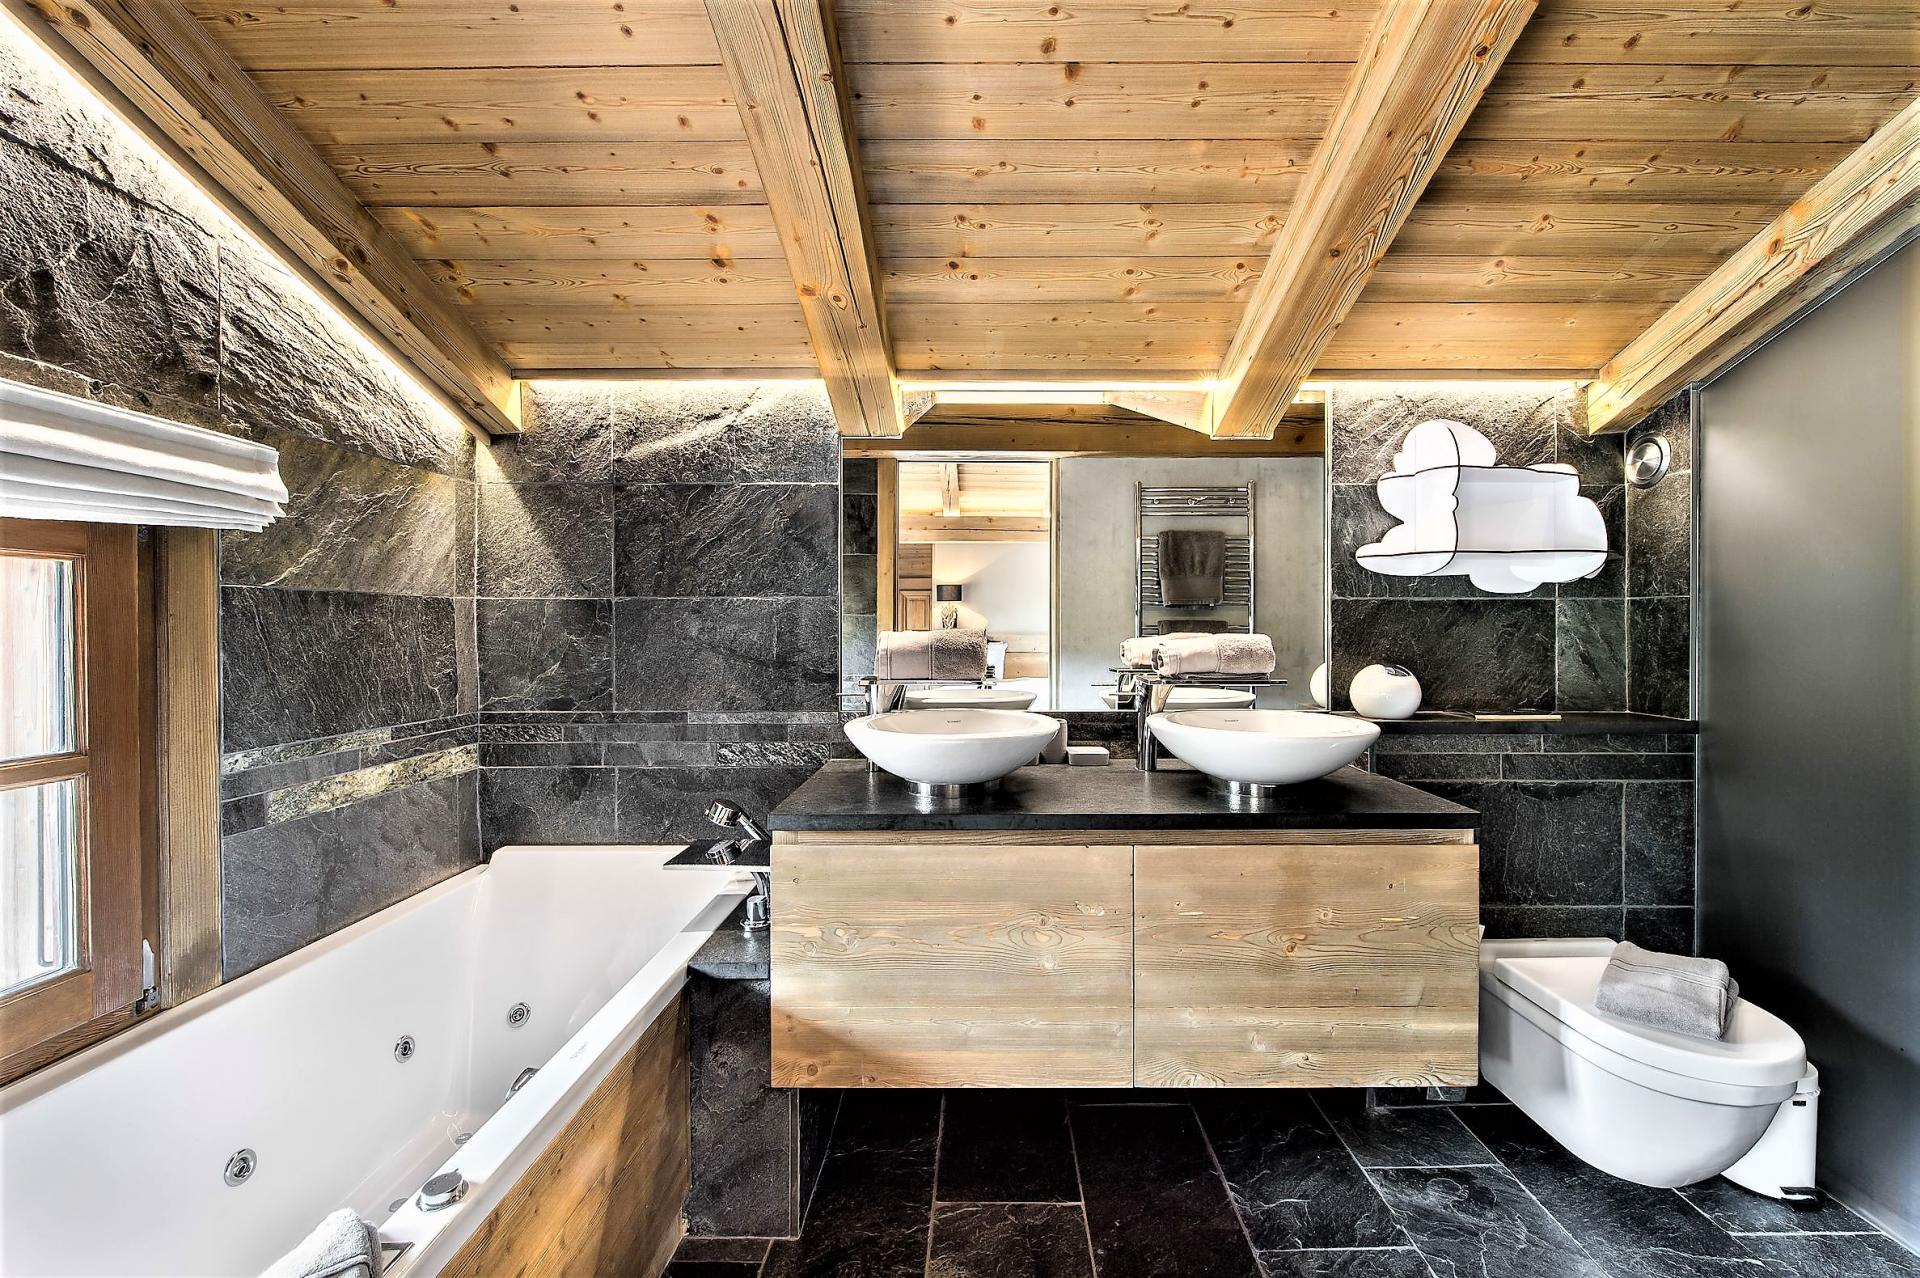 A BEAUTIFUL BATHROOM IN A SKI HOLIDAY CHALET IN THE FRENCH ALPS